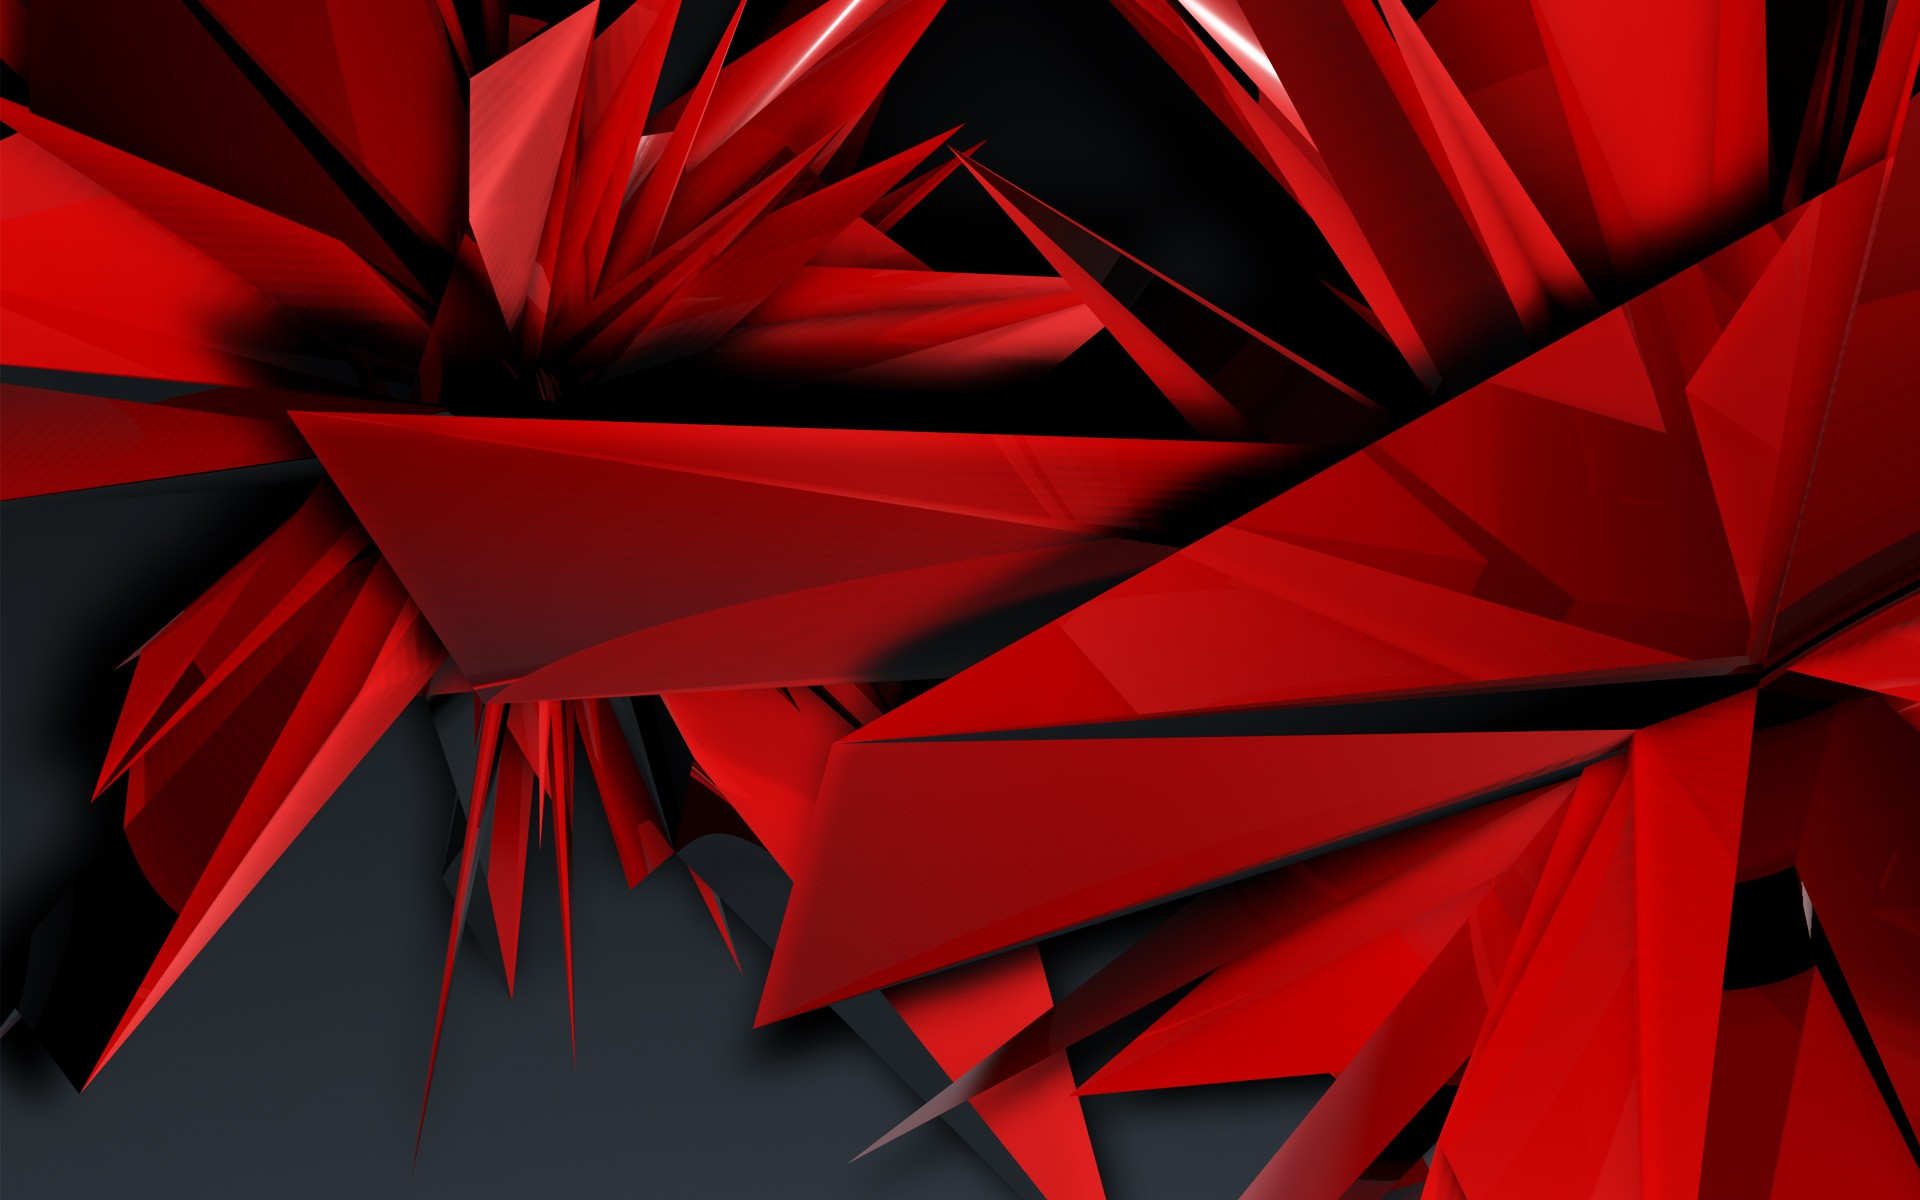 Hd red abstract wallpapers wallpapersafari for 3d wallpaper red